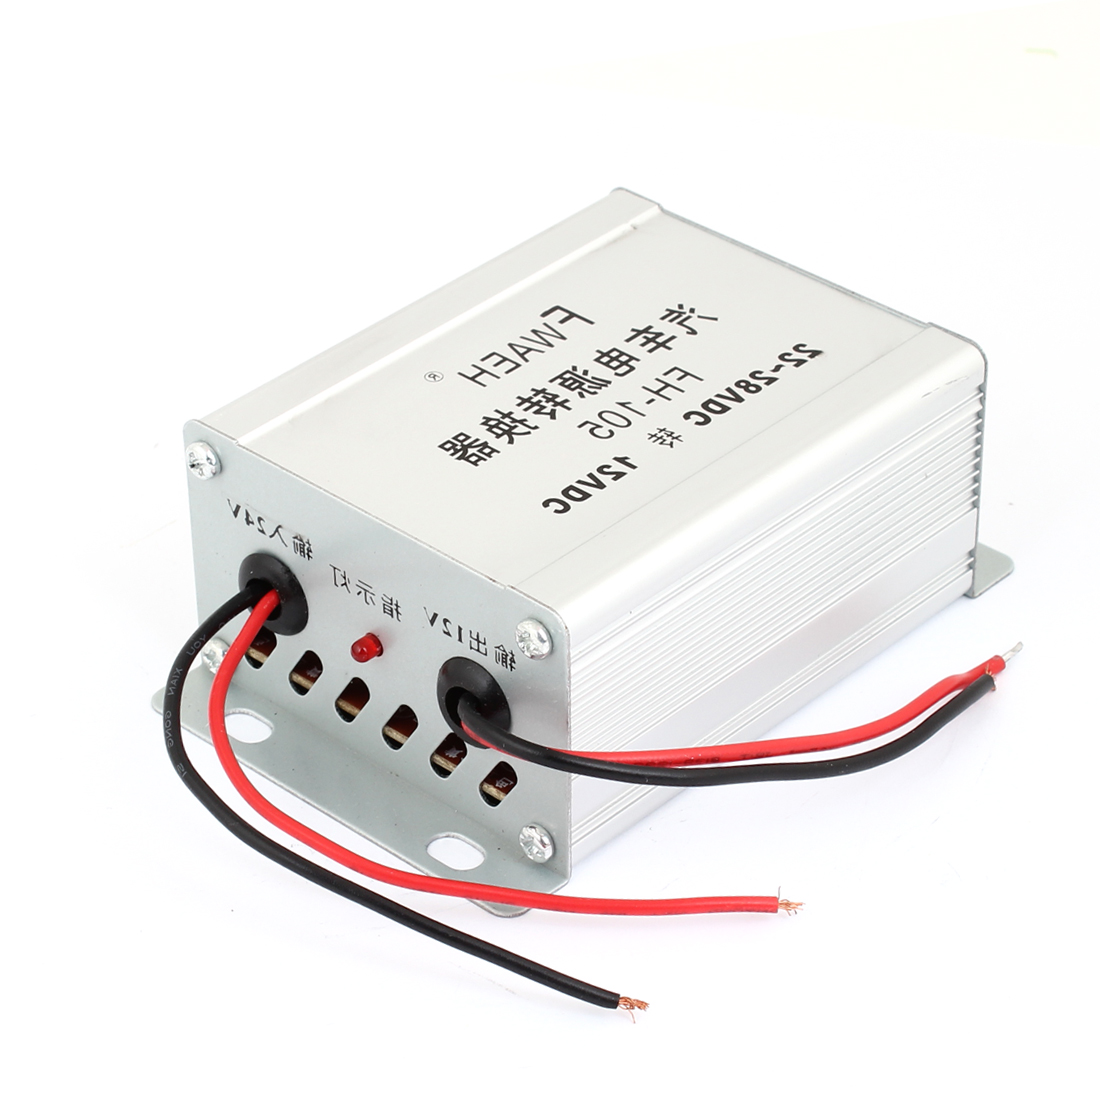 Metal Body 2 Wires DC 22-28V to DC 12V Vehicle Electric Power Tansformer